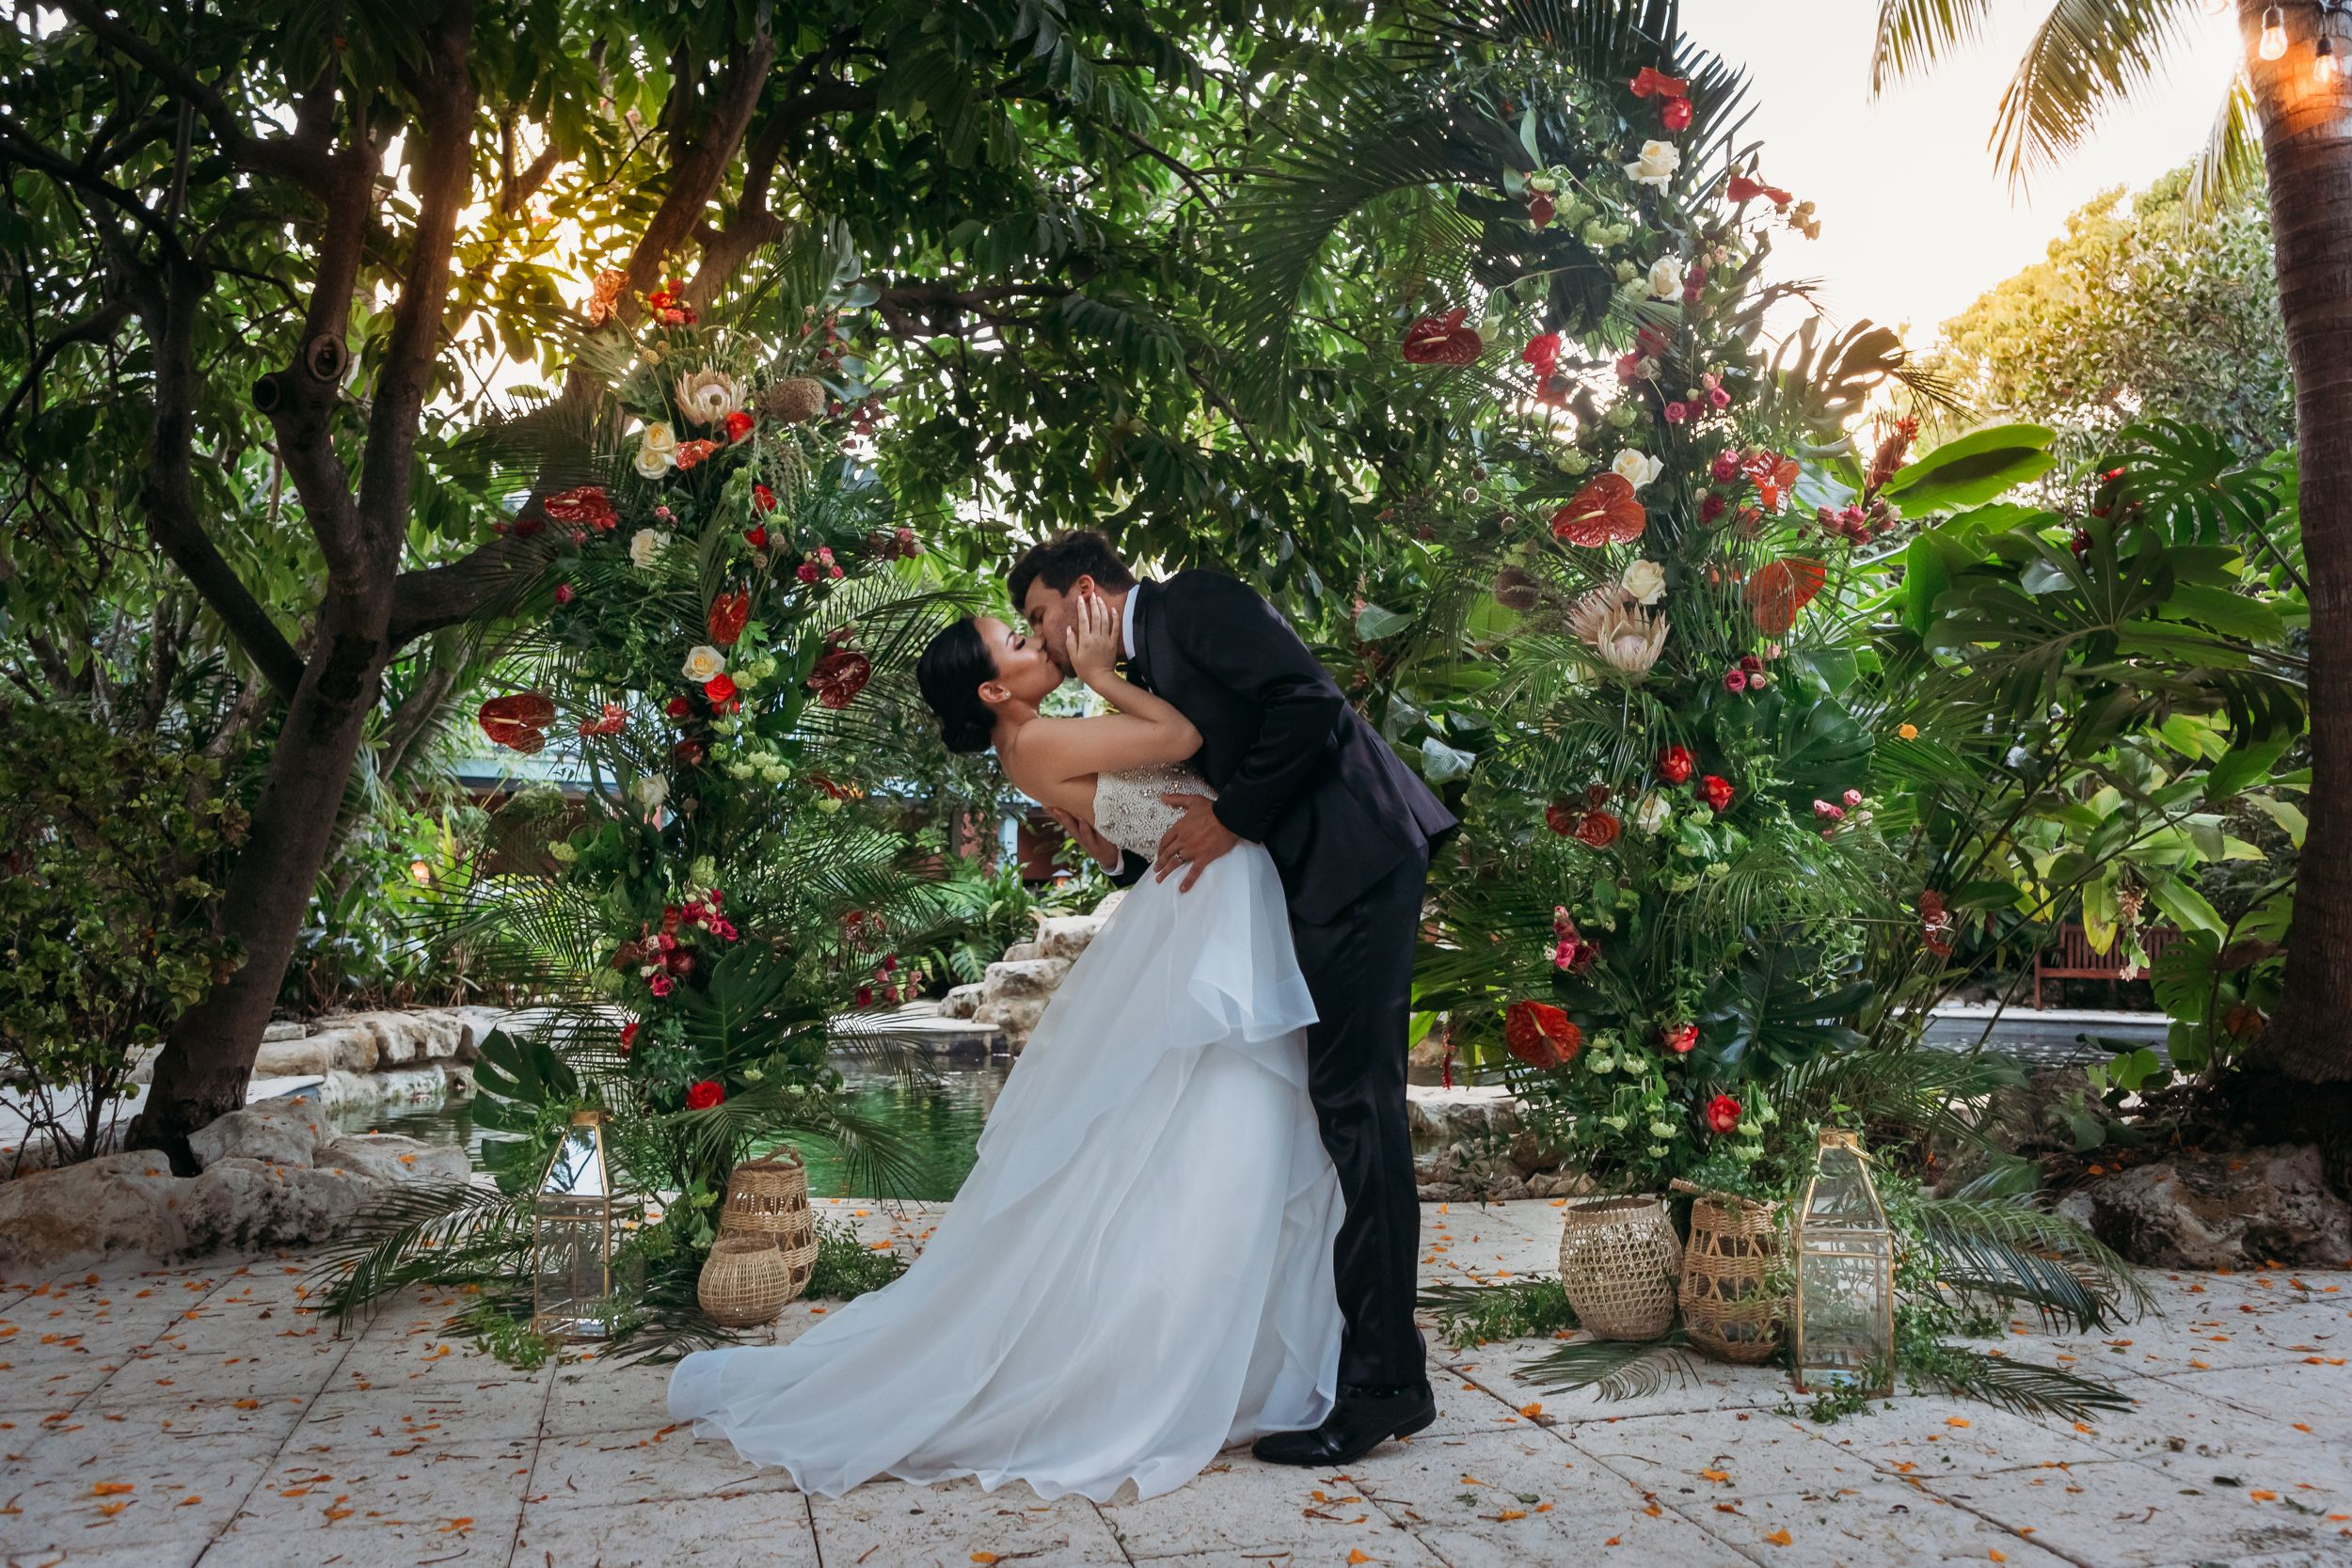 South Florida Intimate Wedding Photographer, Sundy House, Delray Beach